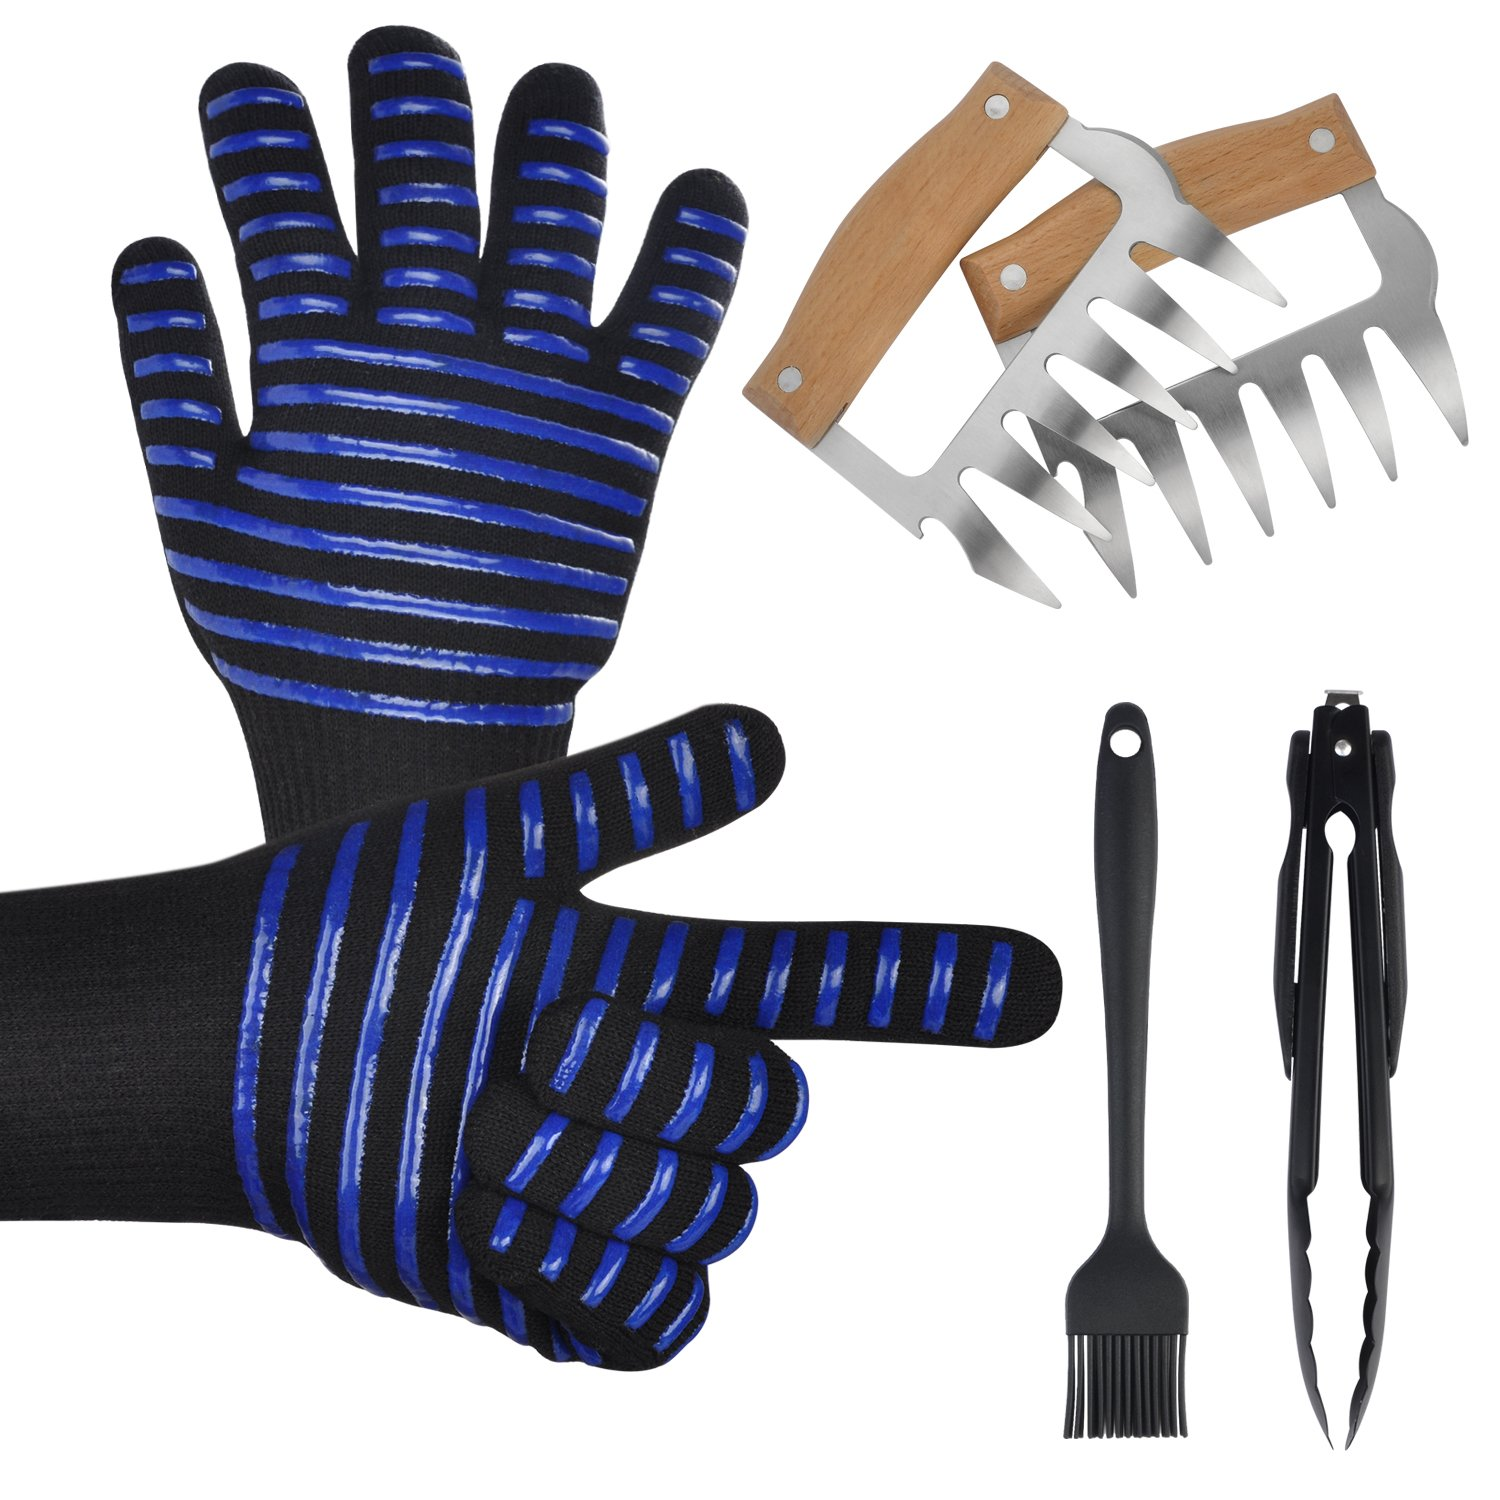 WAPITI BBQ Grill Gloves Meat Shredder Claws Kitchen Tong Silicone Brush Set, Heat Resistant Grilling BBQ, Oven, Grill, Baking, Cooking/Oven Gloves & Barbecue metal Claws